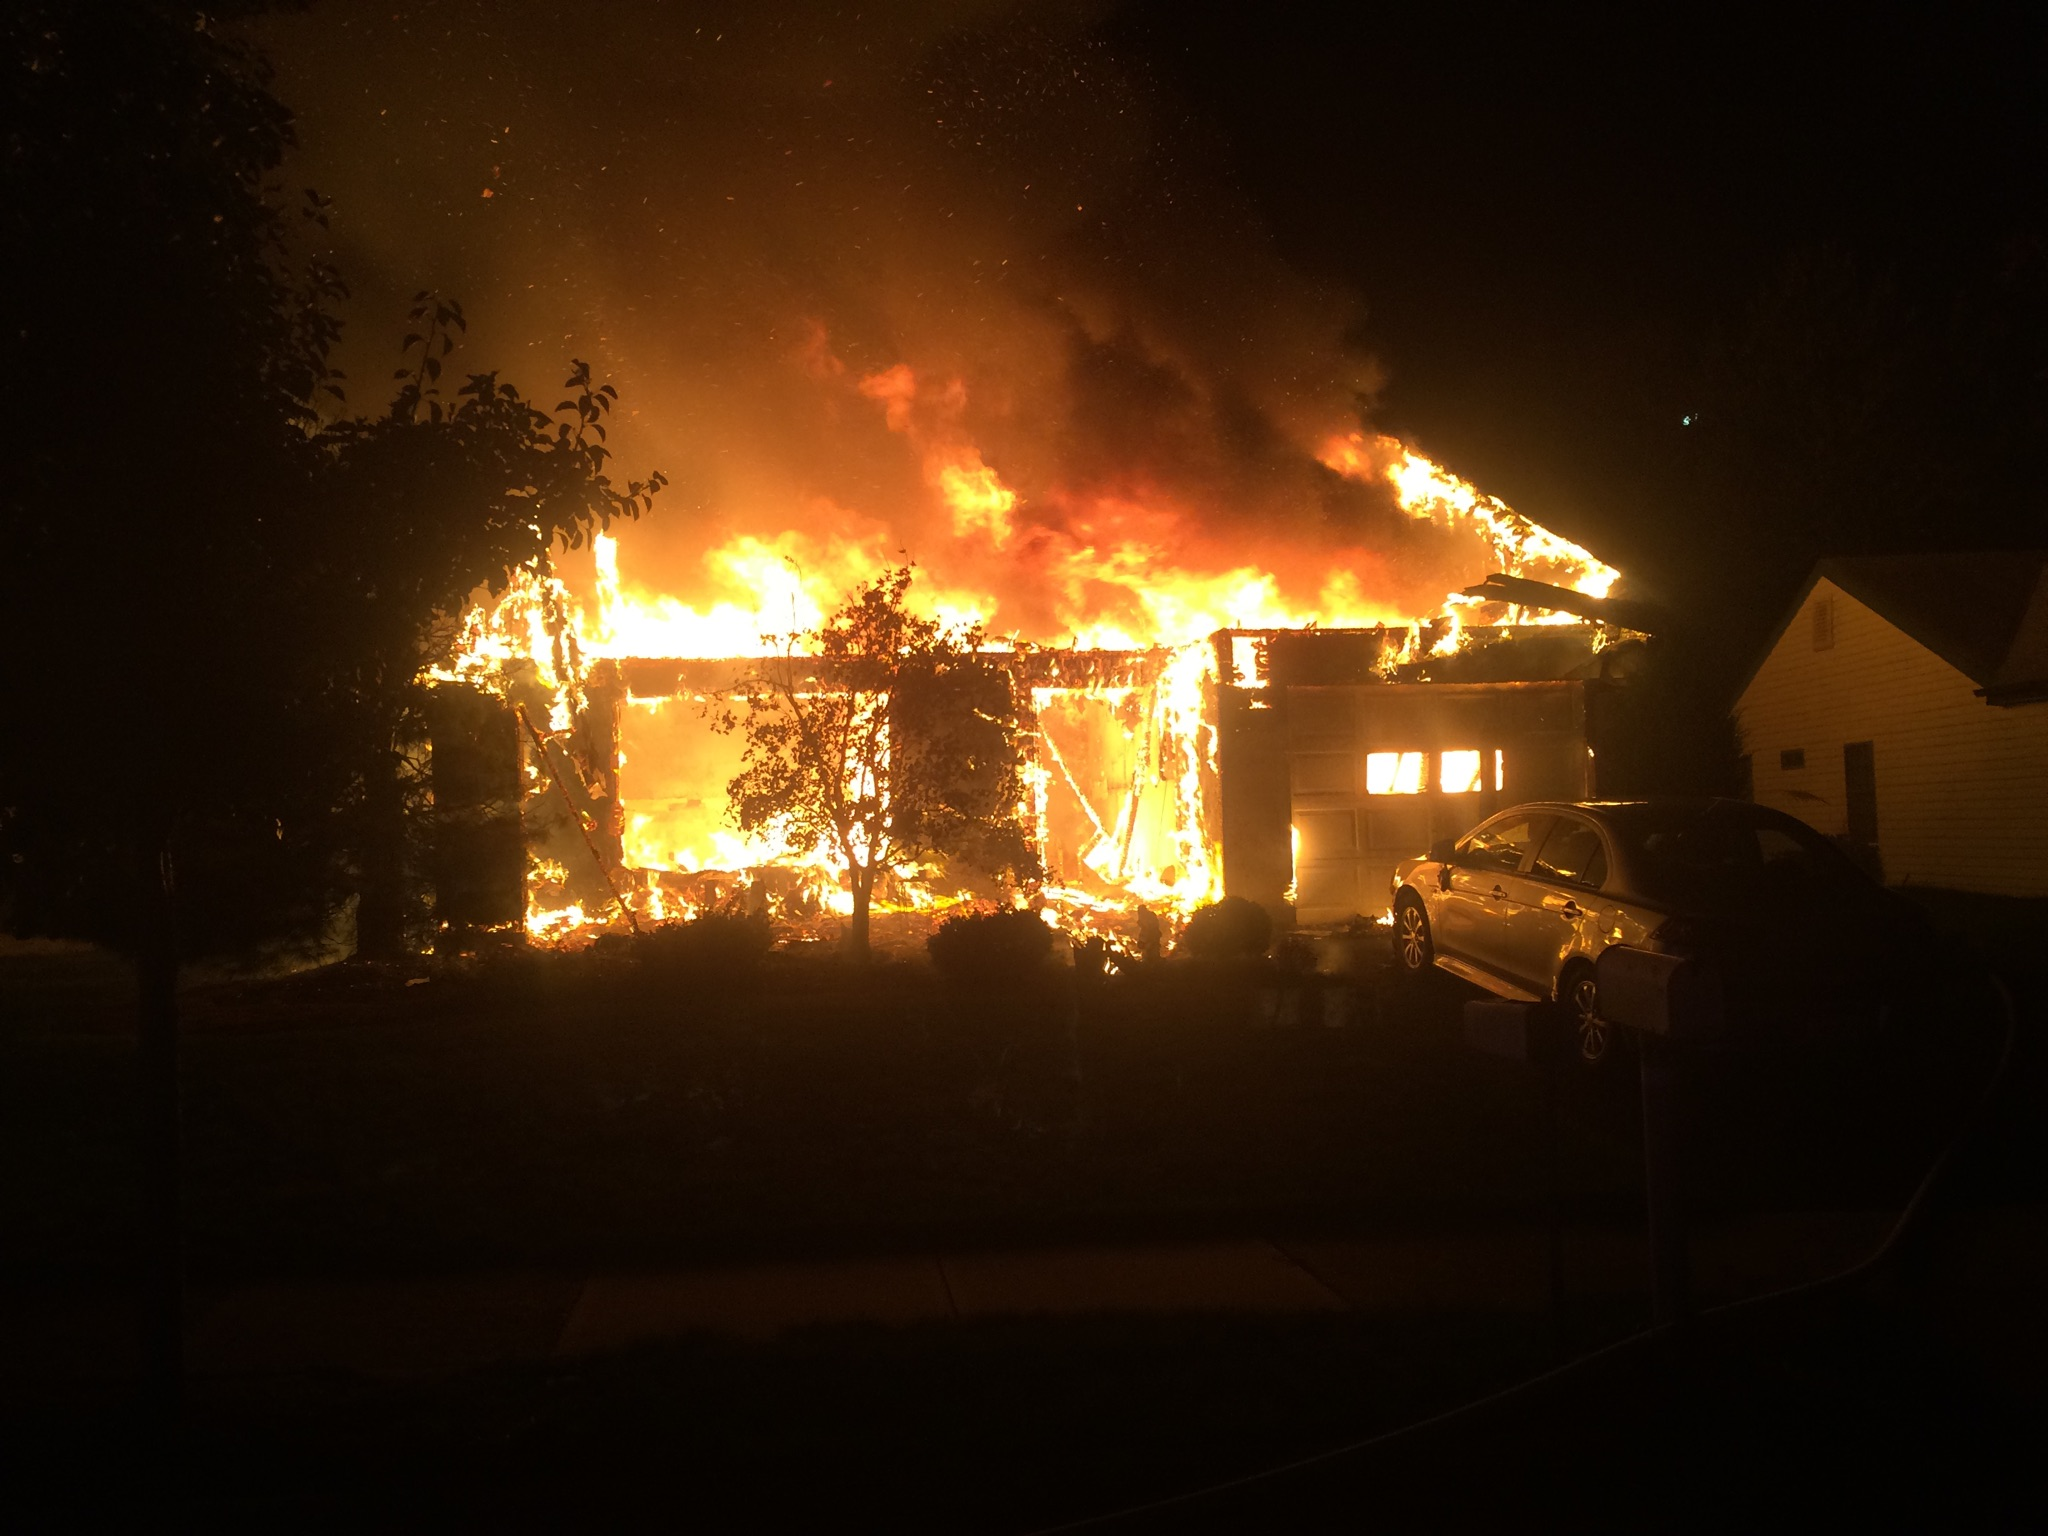 Leisure Knoll Home Destroyed In Fire Manchester Police